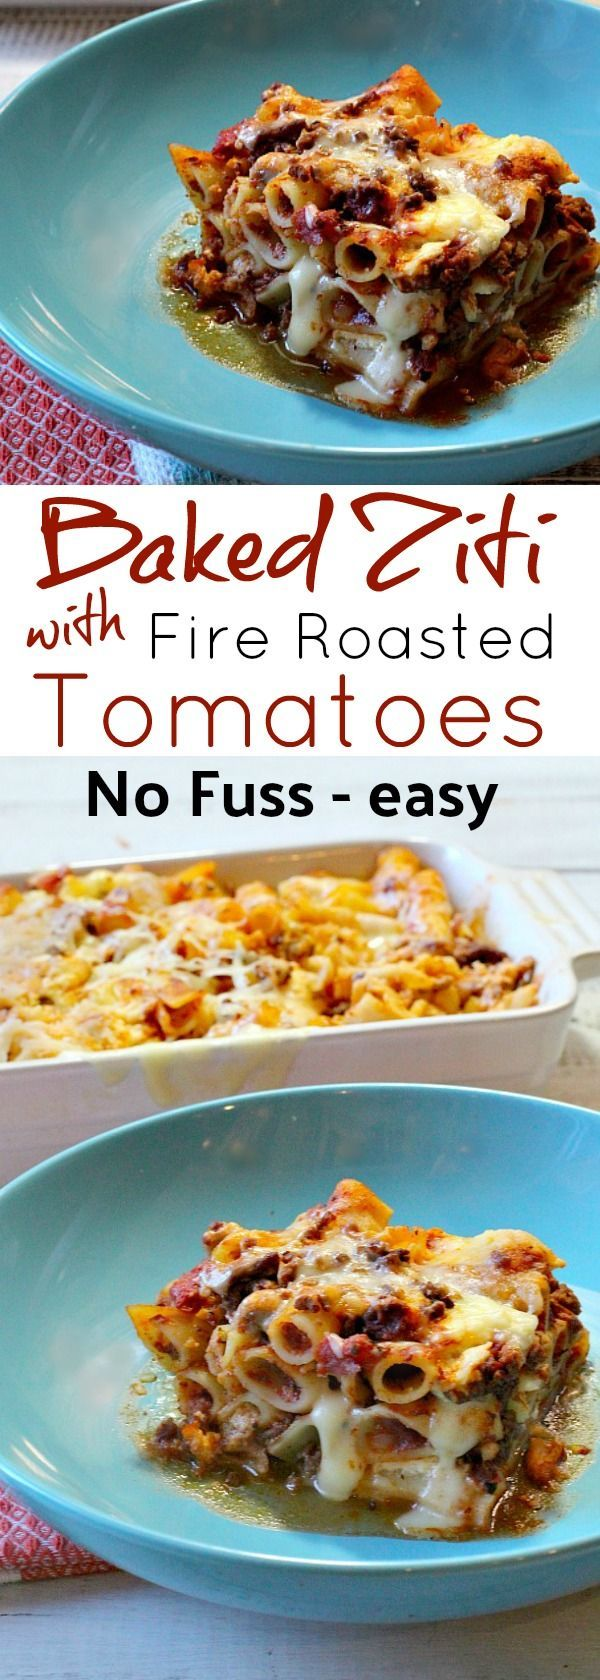 This is an easy cheesy no fuss recipe for baked ziti with fire roasted tomatoes. Simple with cheese, tomatoes, pasta, ground beef and zucchini. Great for make ahead and will freeze well. #ziti #baked #casserole  via @lannisam